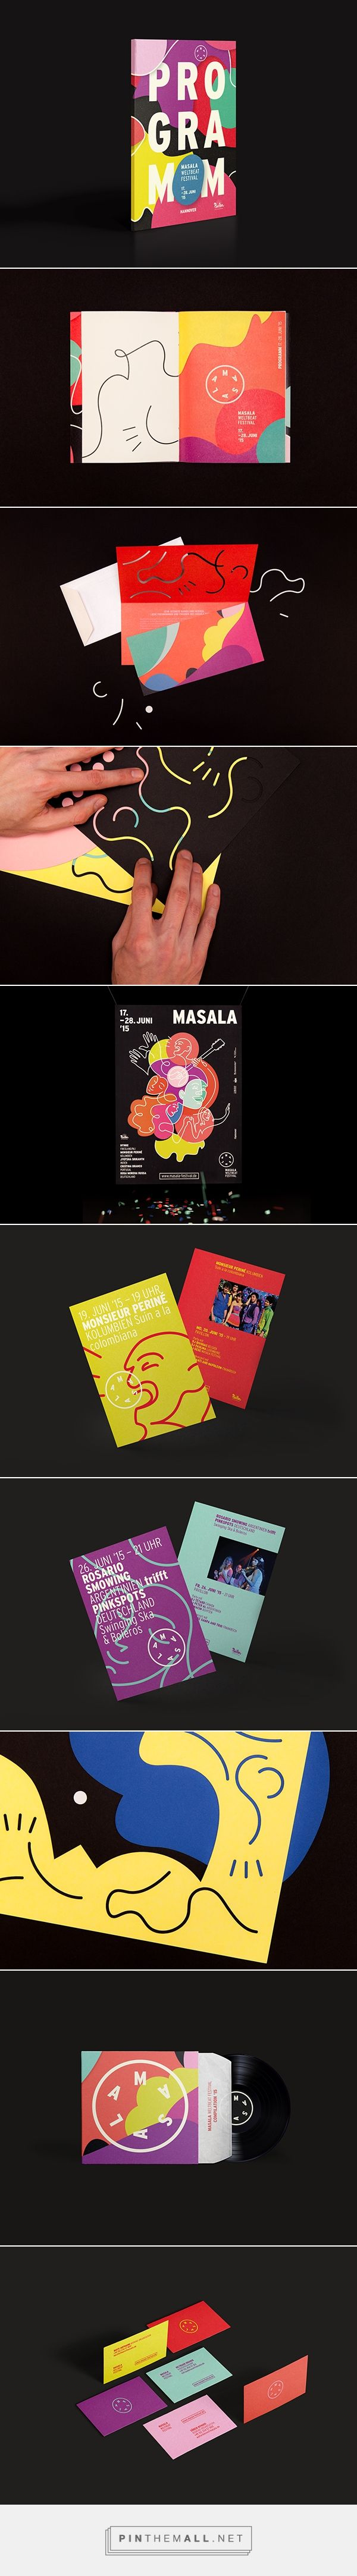 Masala Weltbeat Festival on Behance - created via http://pinthemall.net